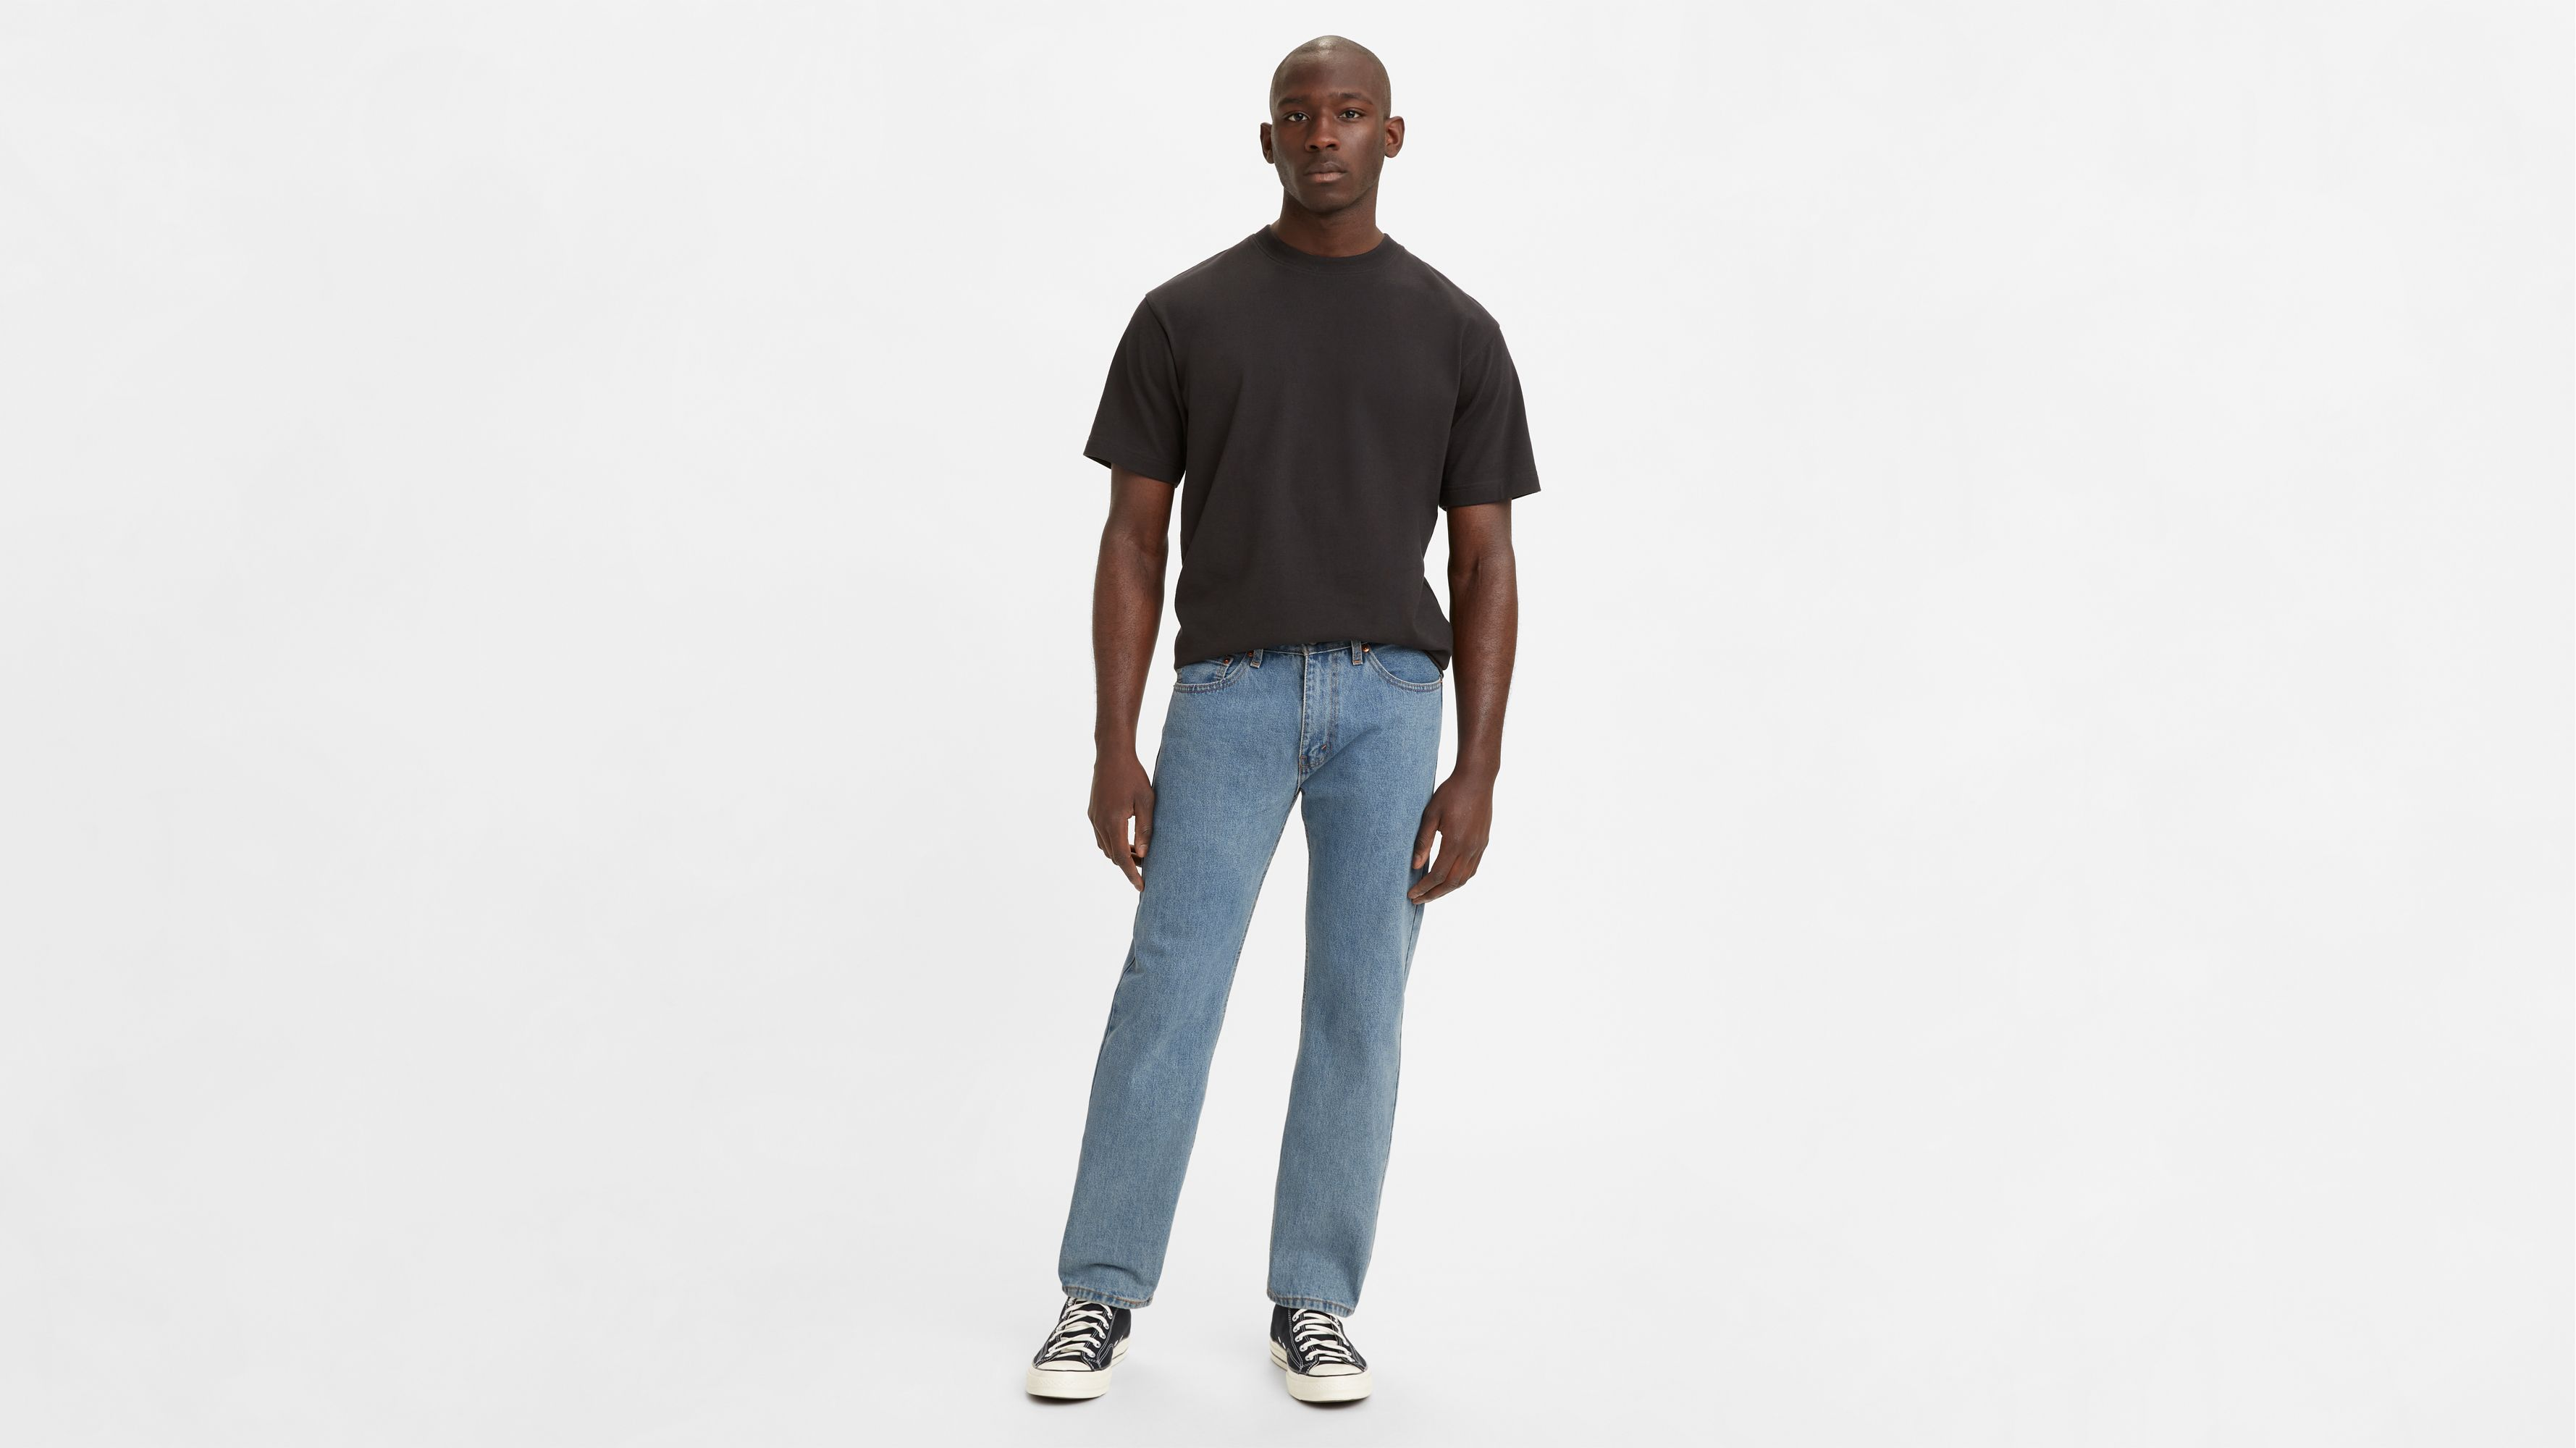 levis jeans for men straight